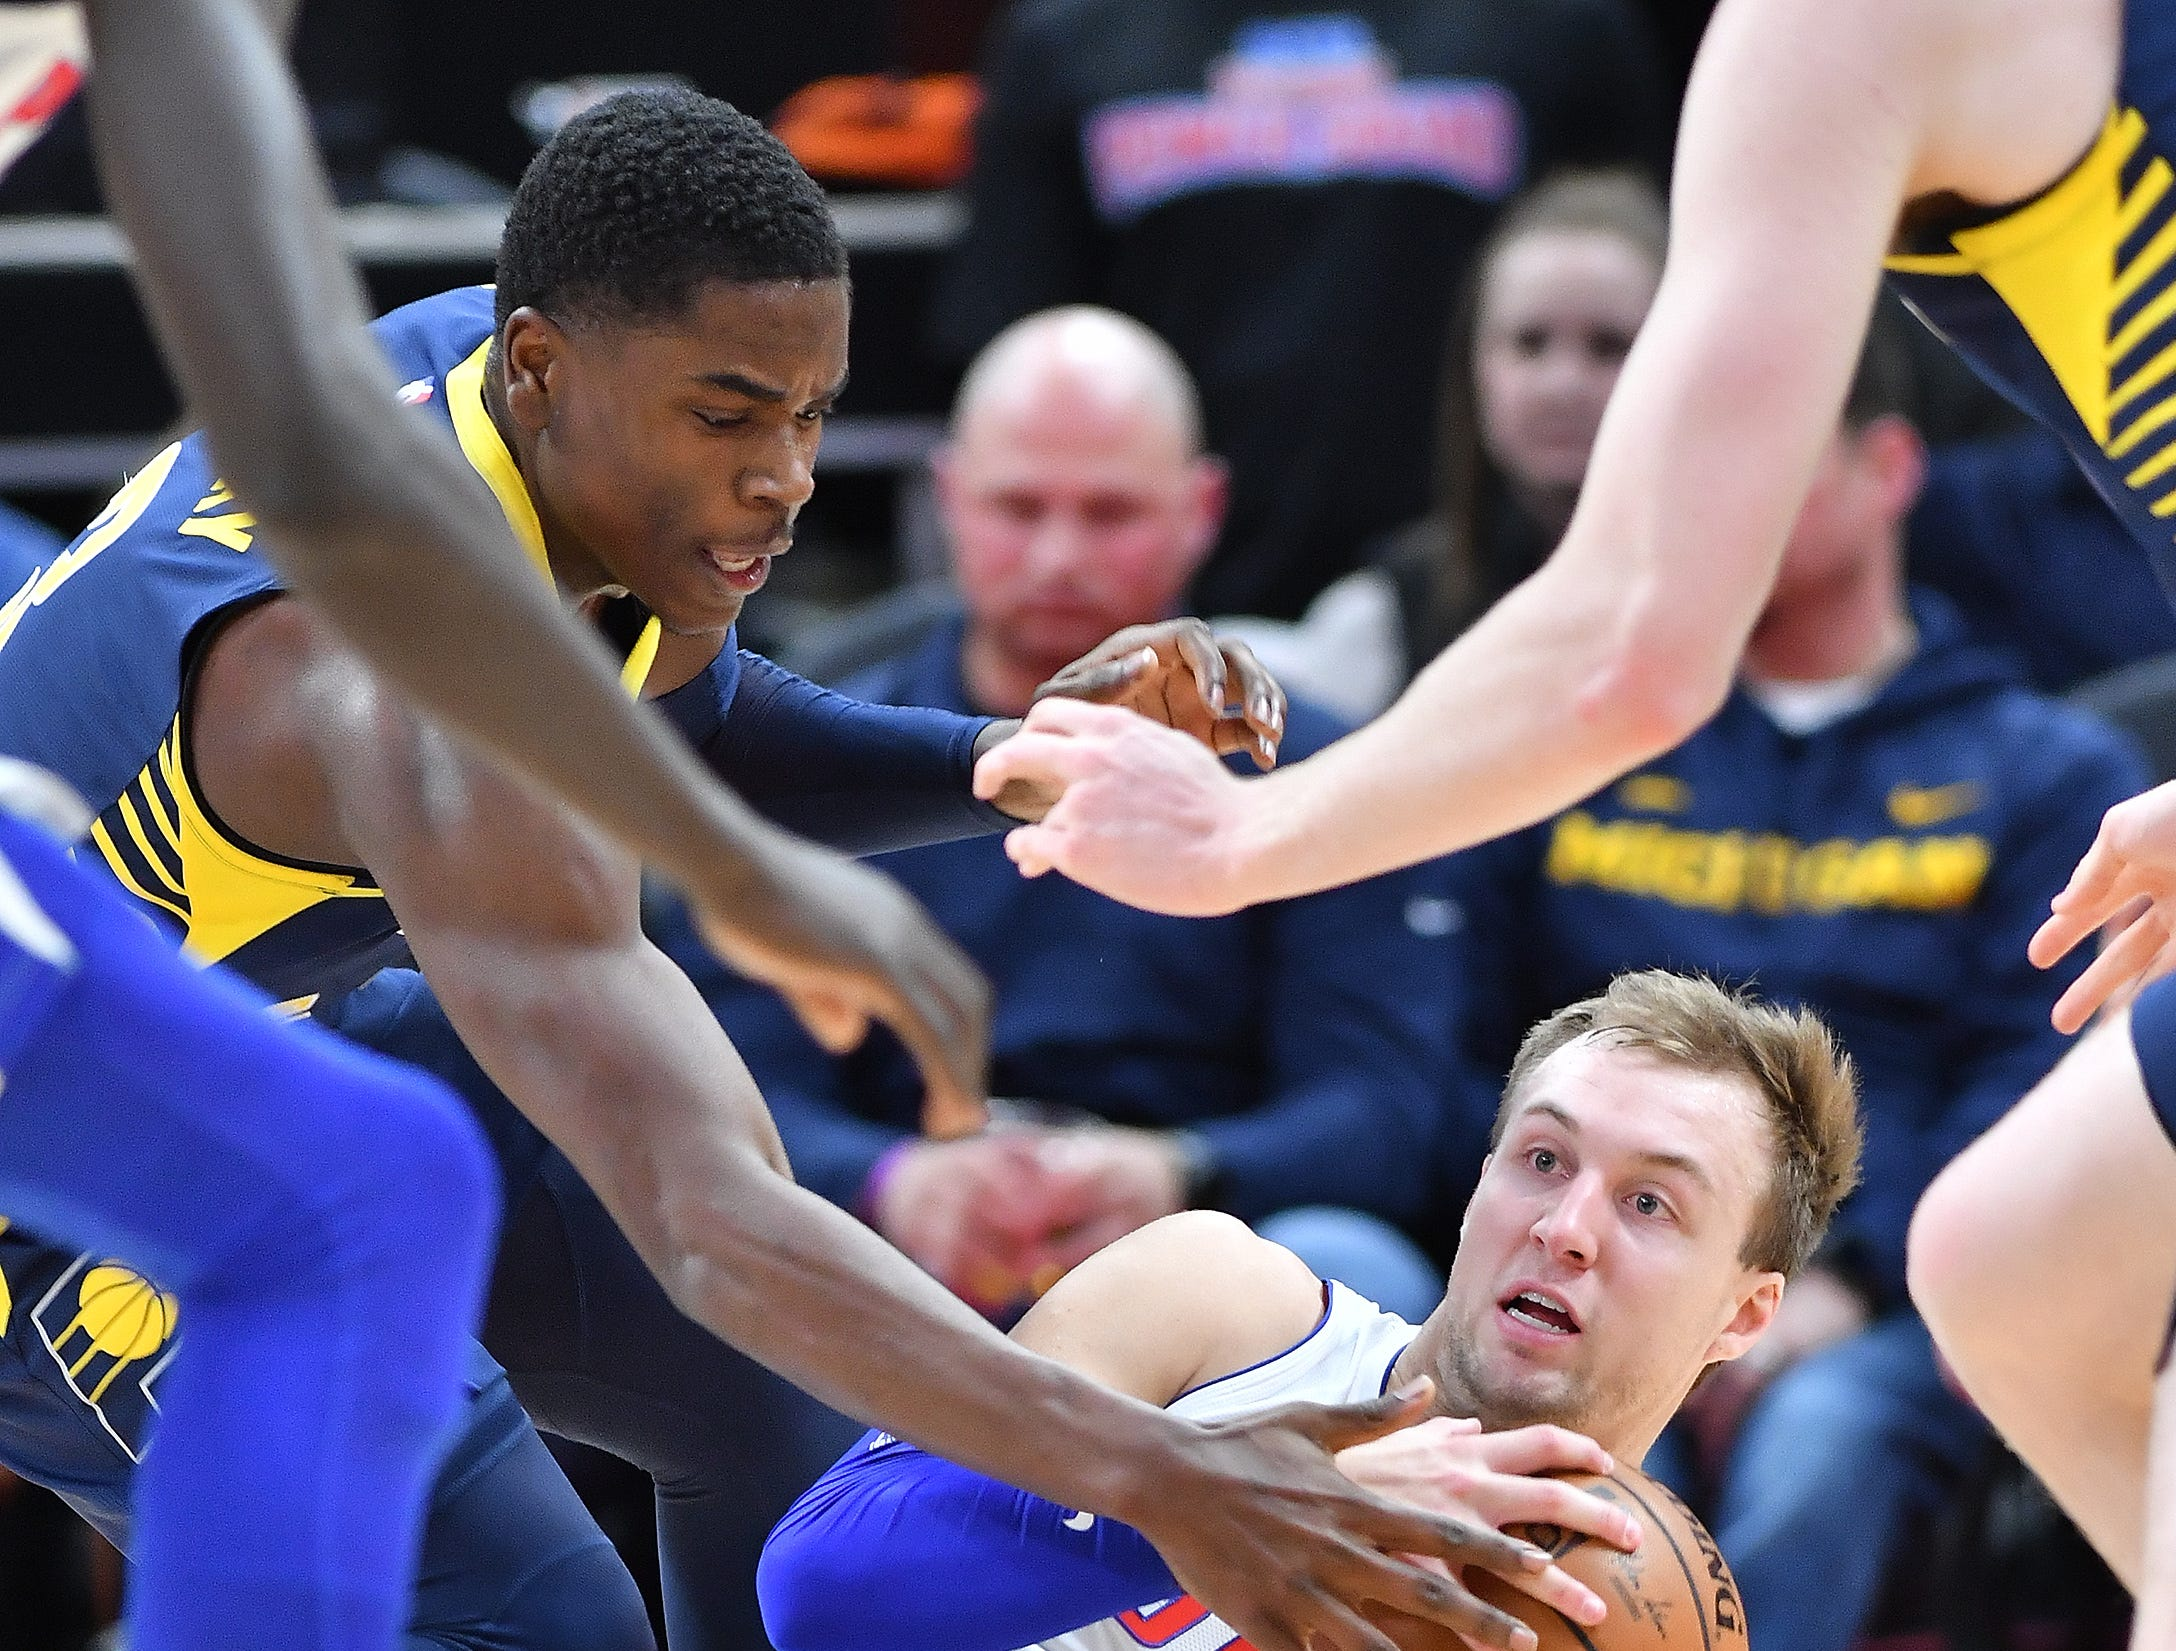 Pistons' Luke Kennard fights for a loose ball with Pacers' Aaron Holiday in the second quarter.